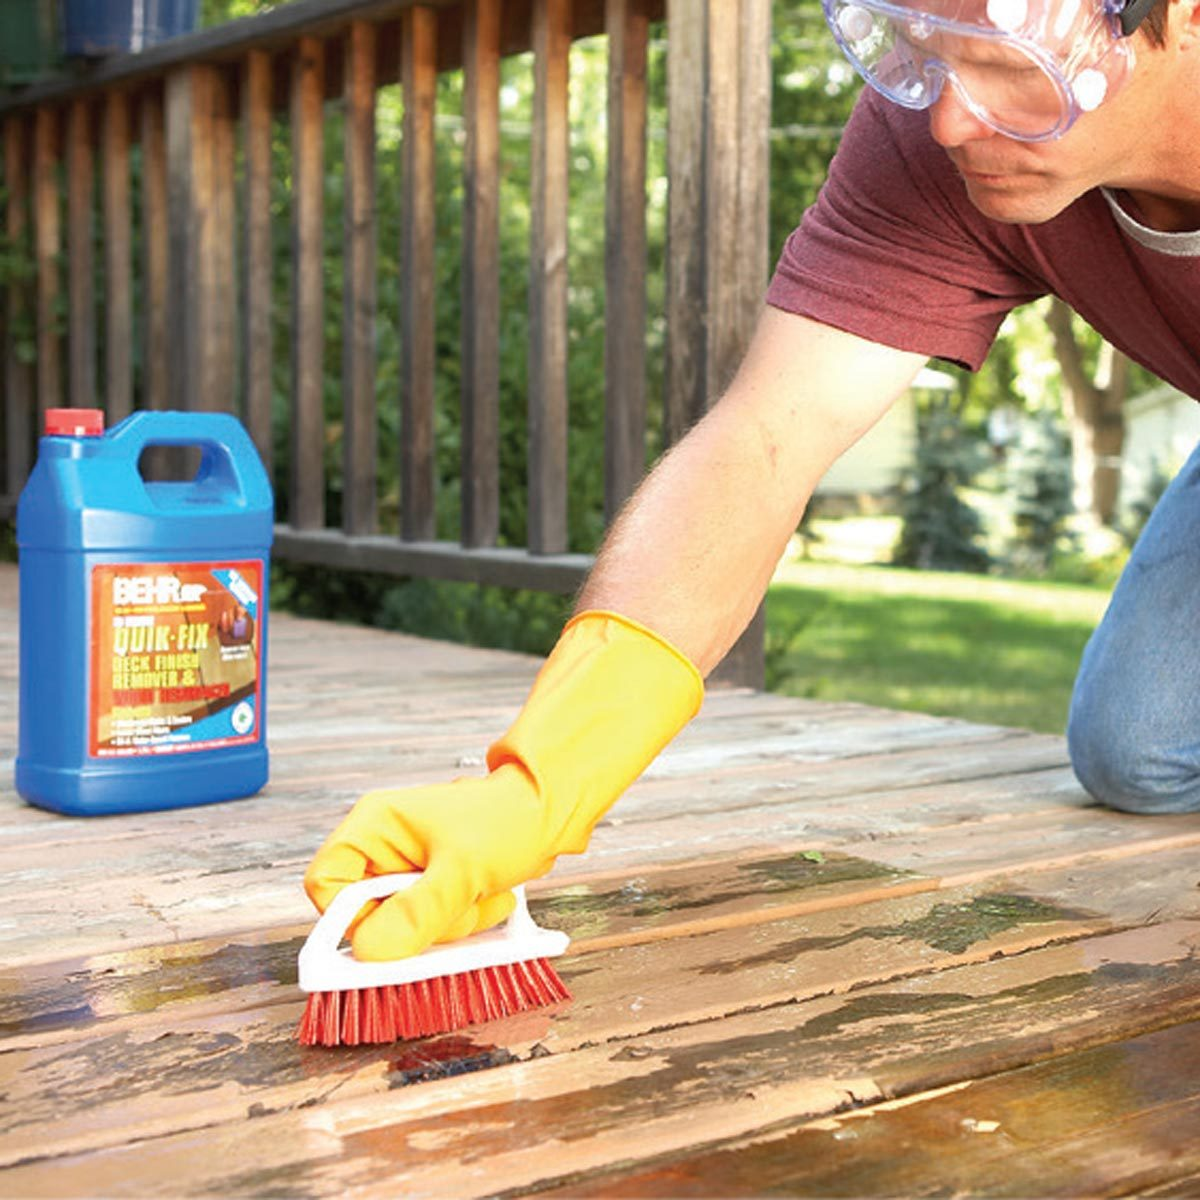 cleaning scrubbing deck for best deck finish